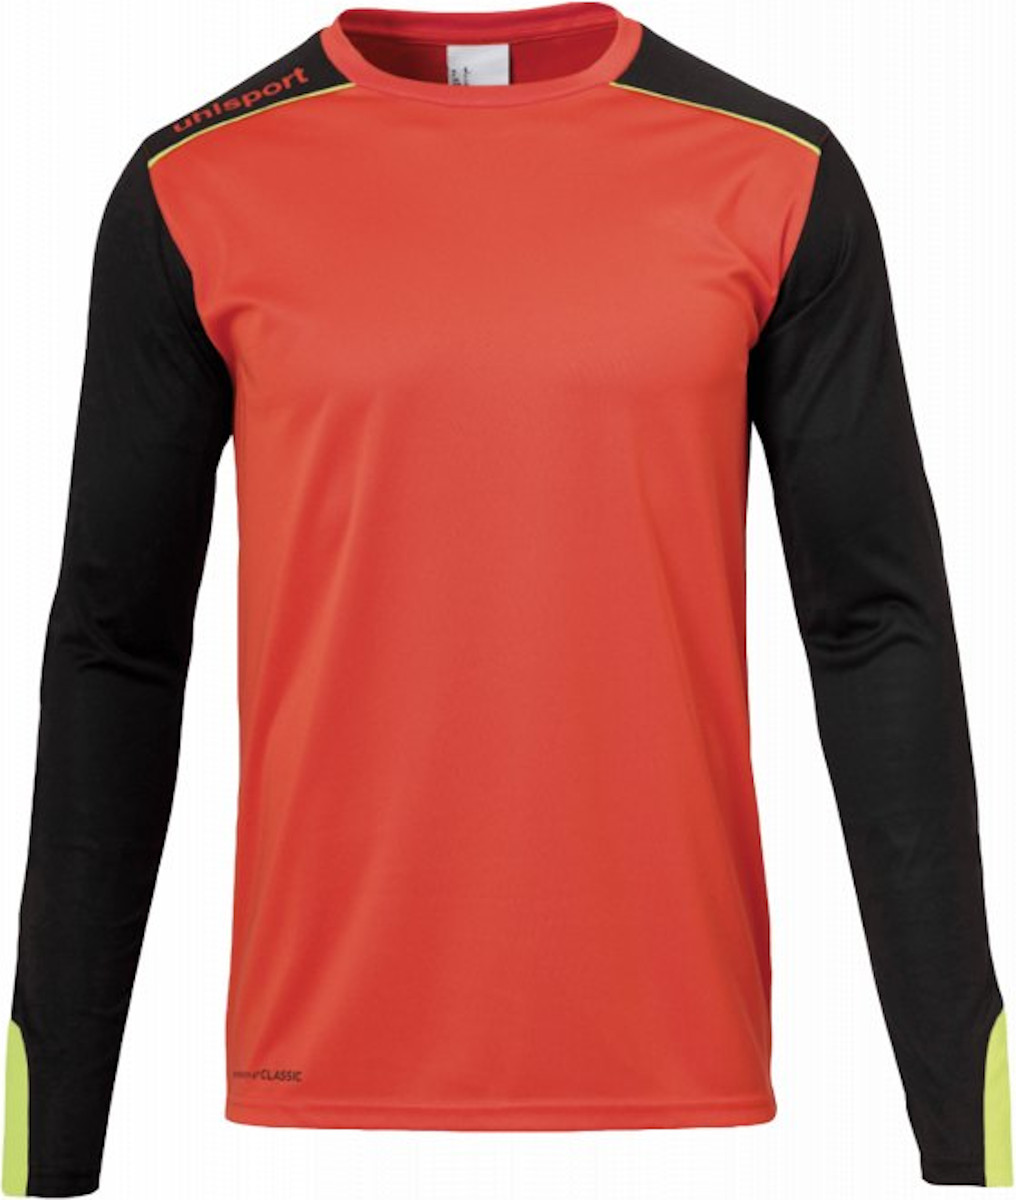 Maillot à manches longues Uhlsport Tower GK JSY LS